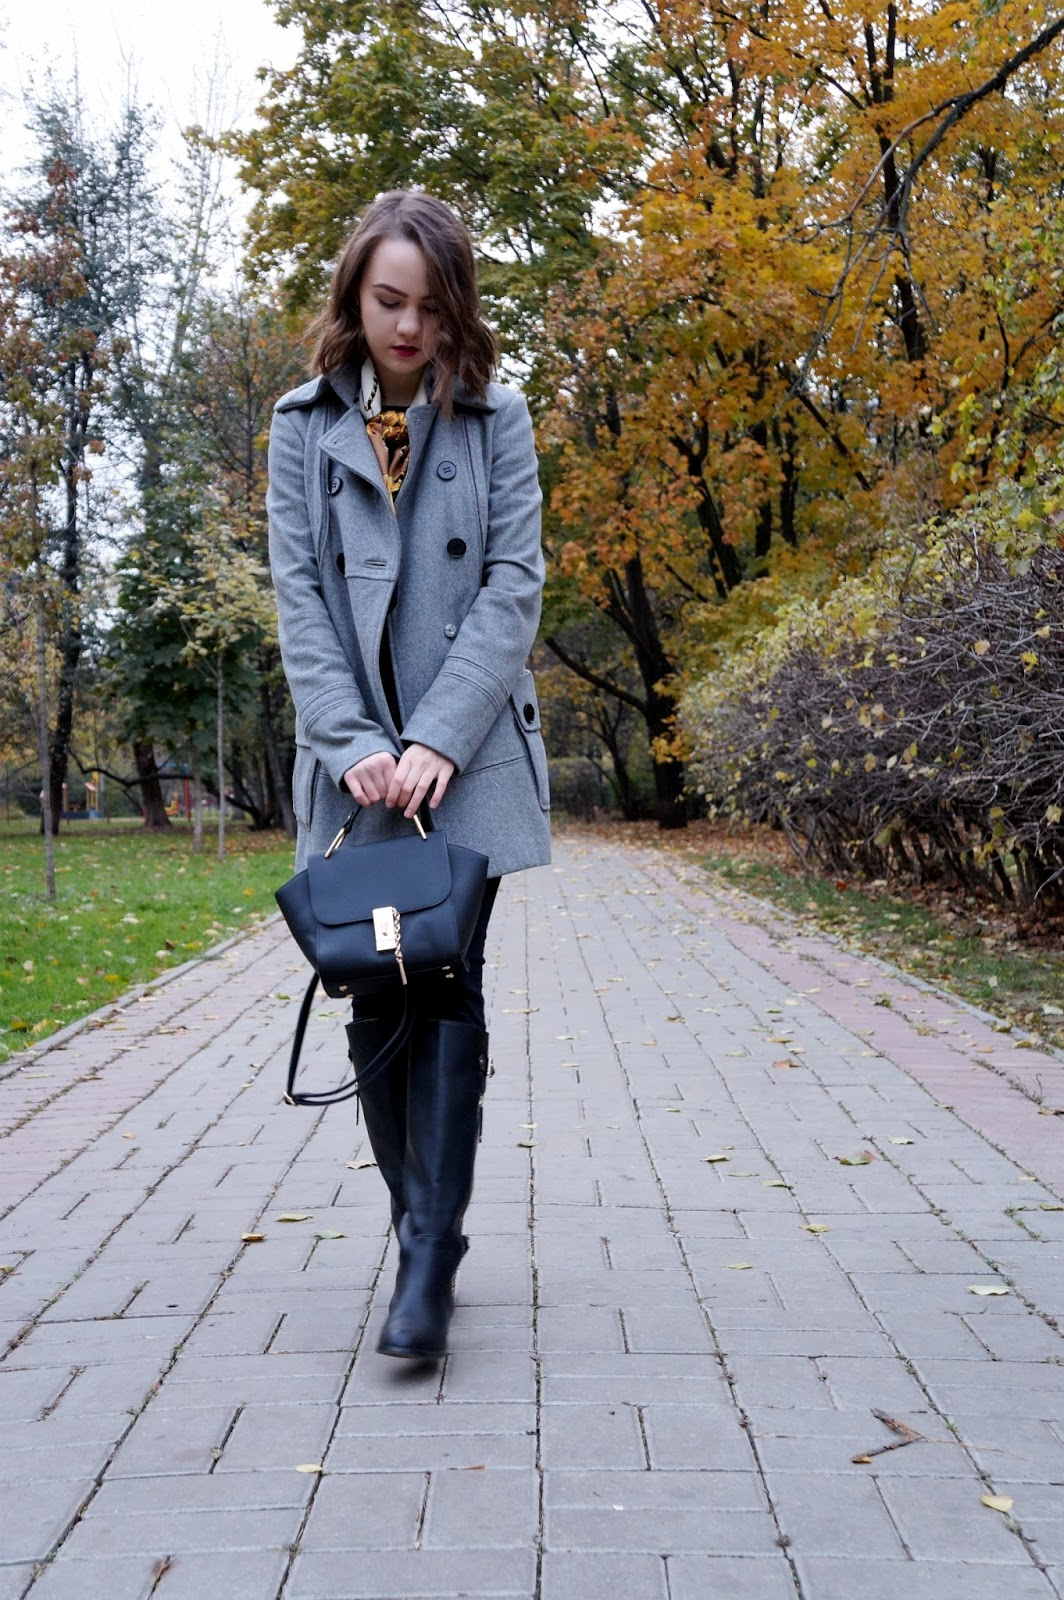 Grey coat | Fashion blogger | Alina Ermilova | Winter look | mini Bag